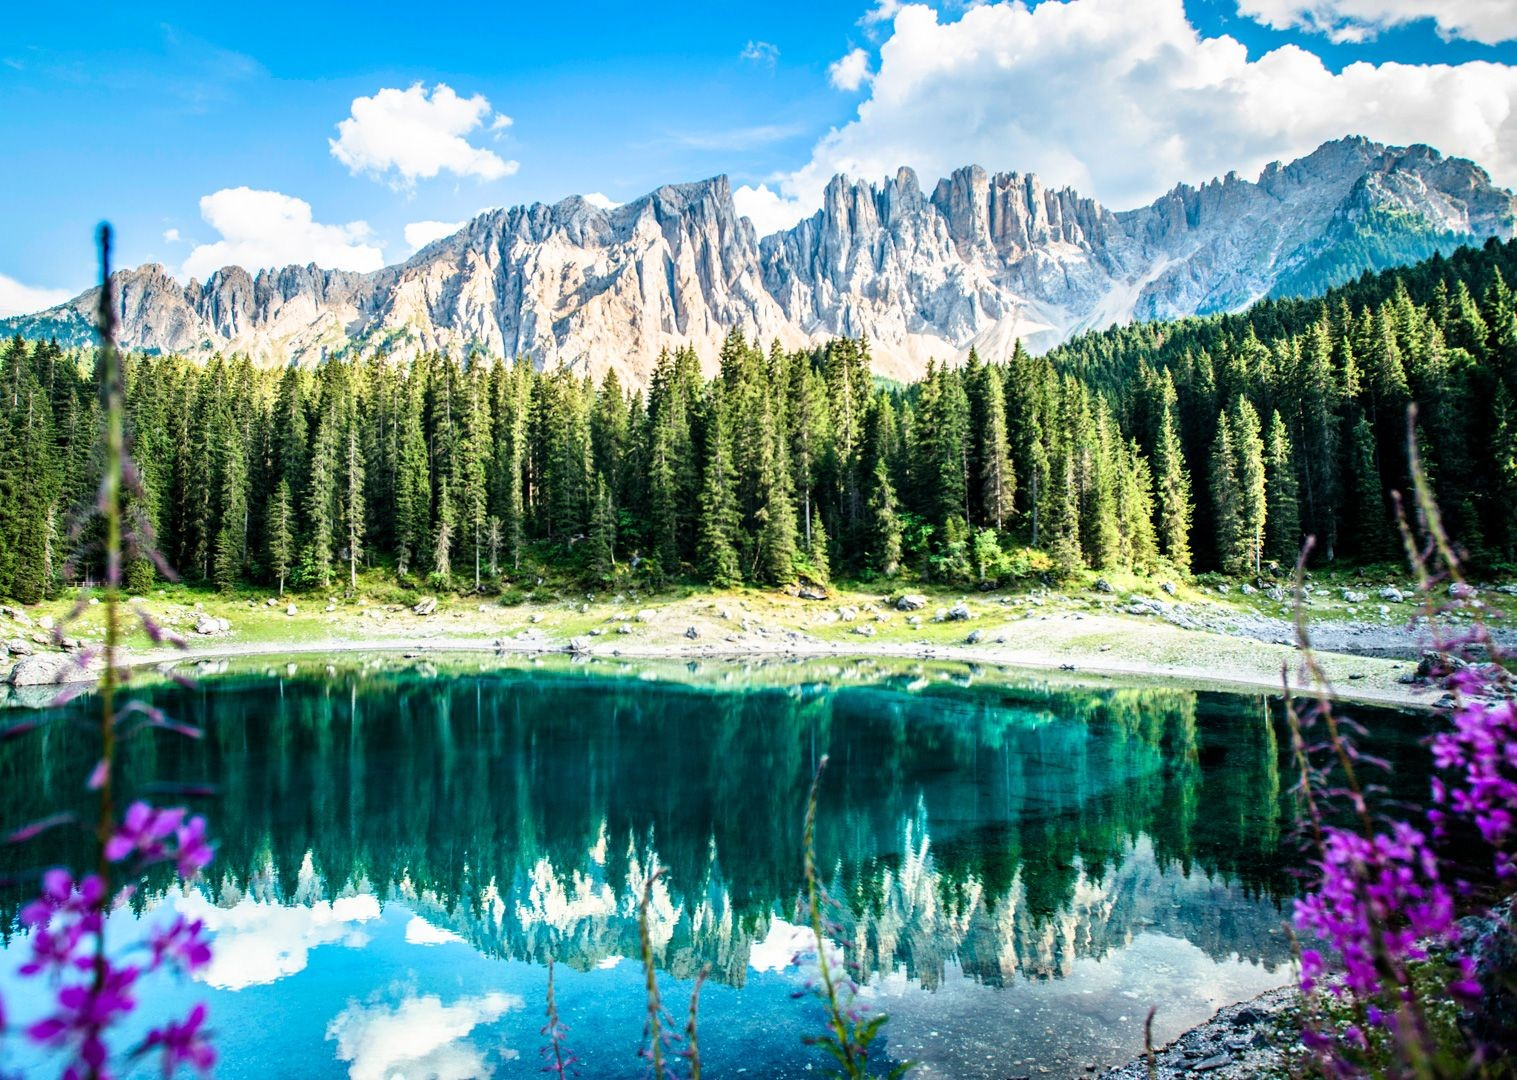 forests-lakes-and-mountains-of-italy-on-road-cycling-holiday.jpg - Italy - Italian Dolomites - Guided Road Cycling Holiday - Italia Road Cycling